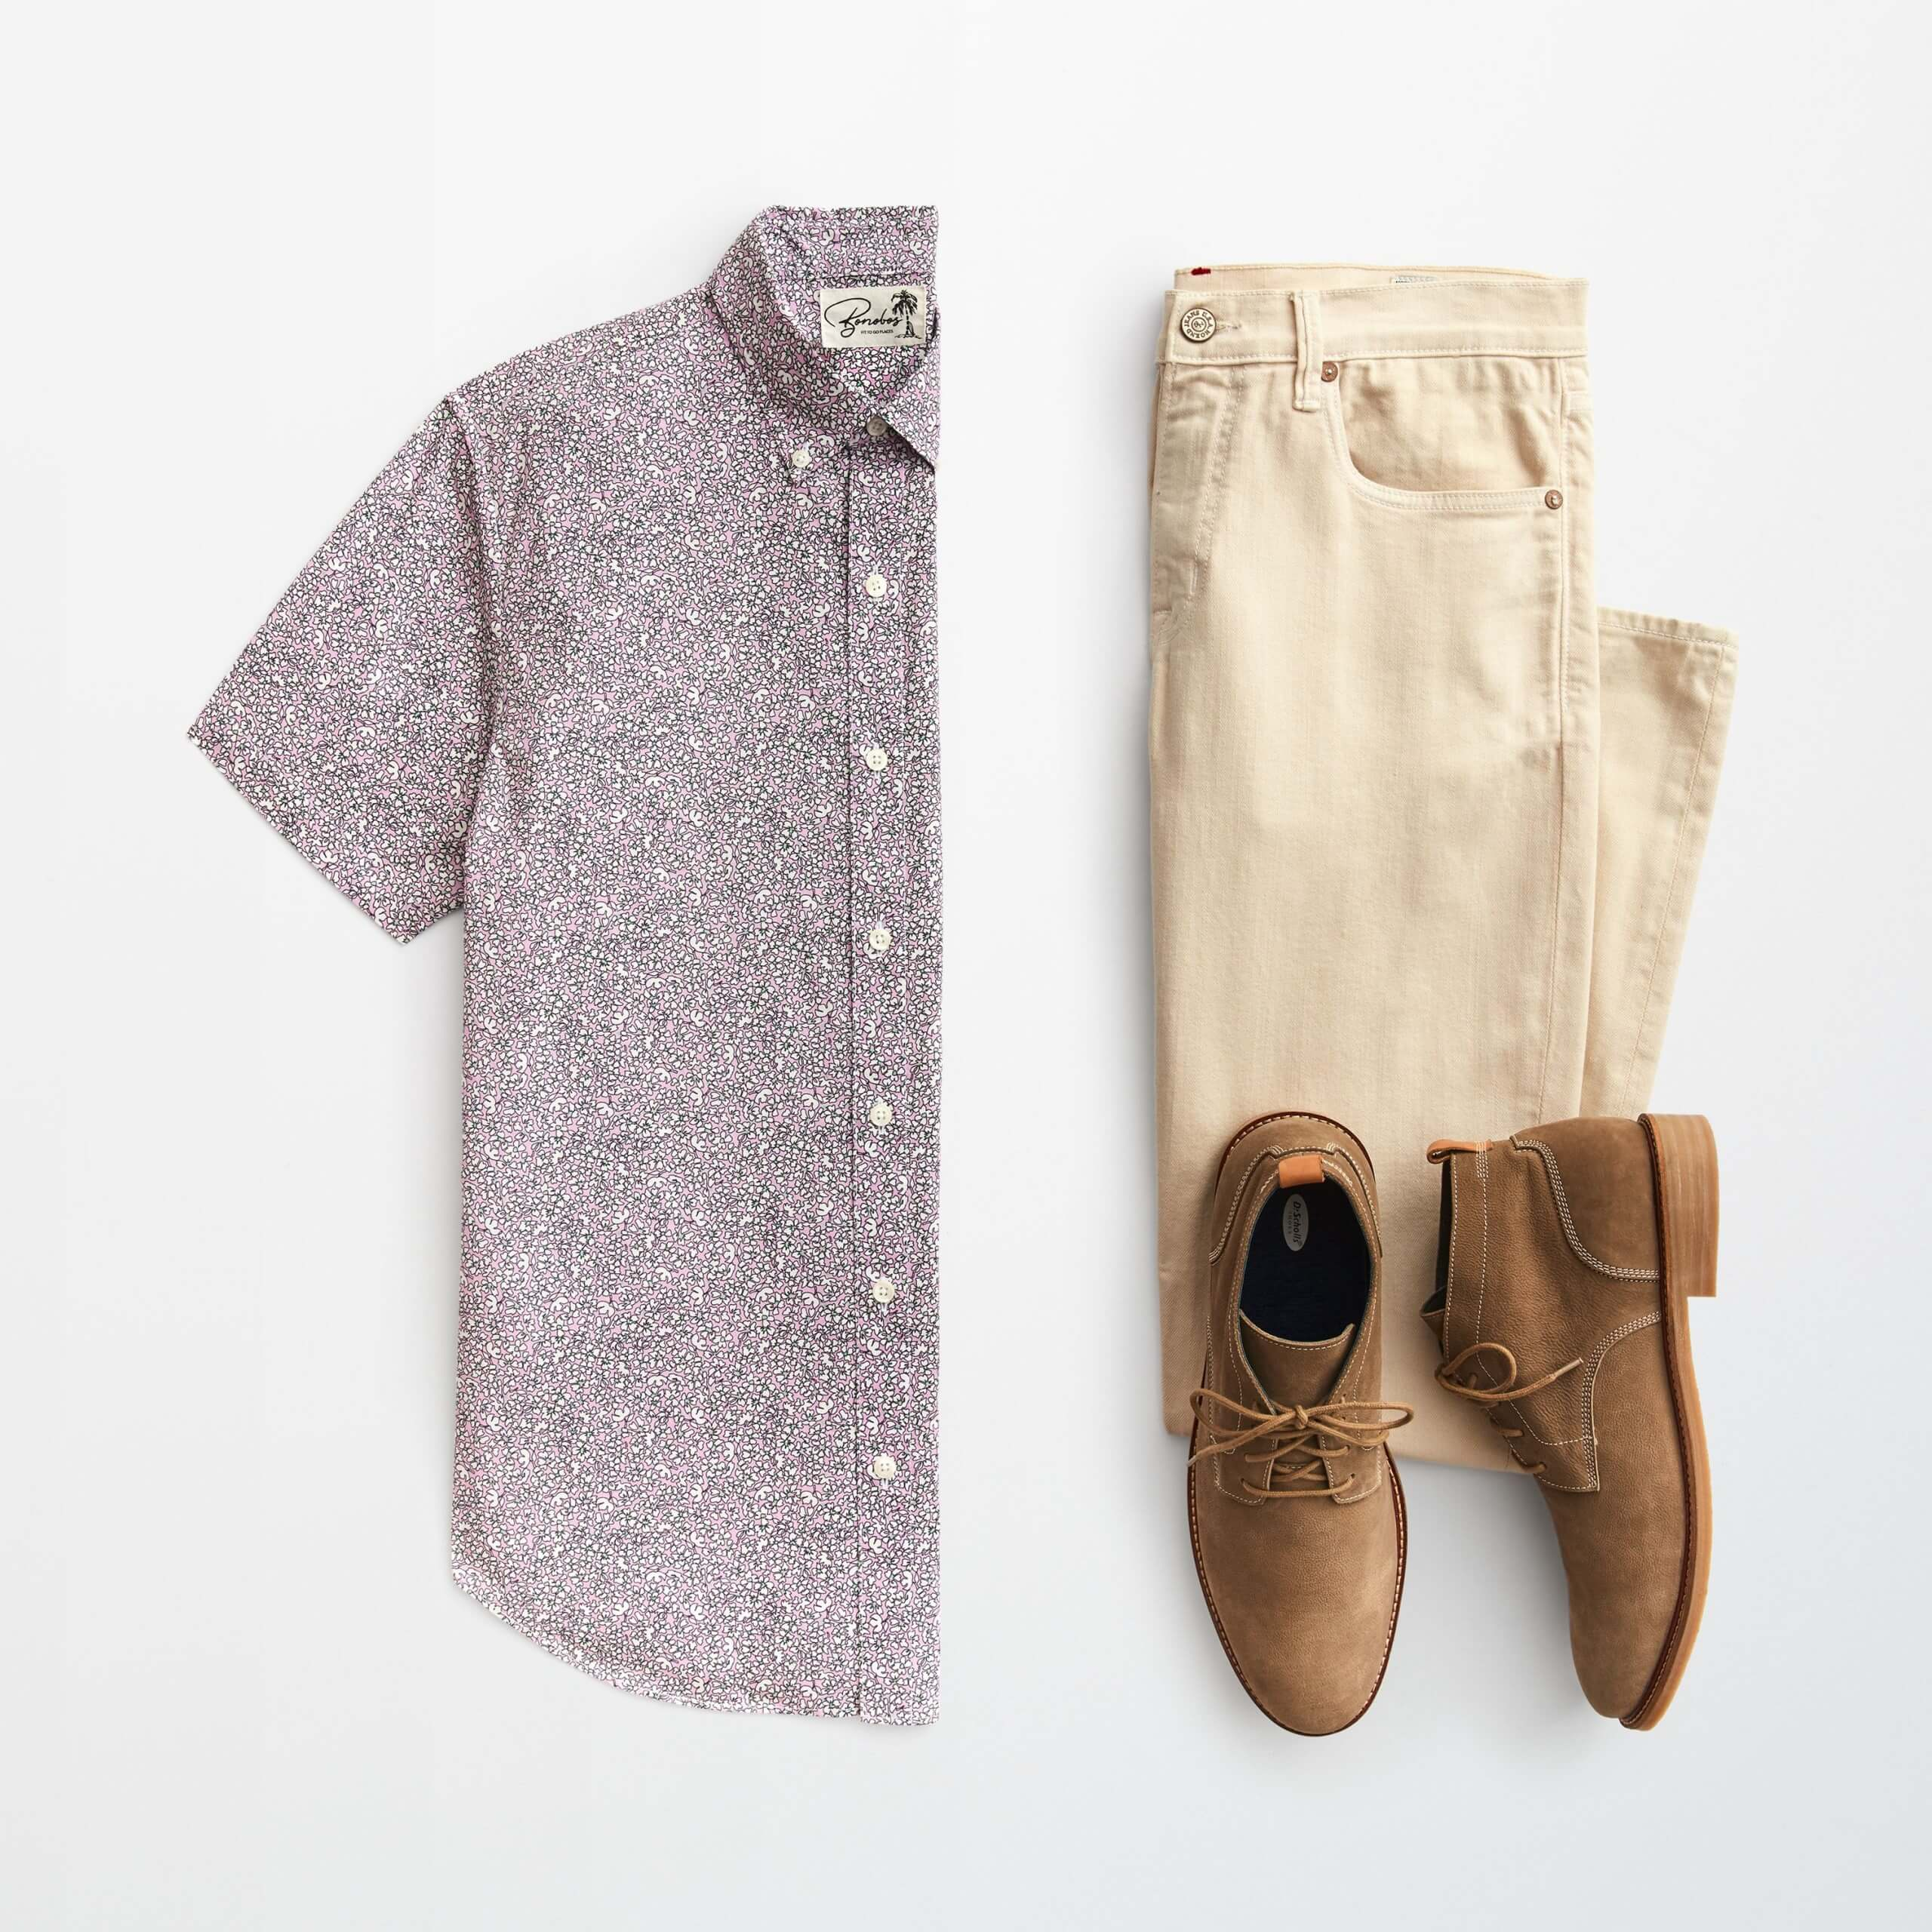 Stitch Fix Men's outfit laydown patterned short-sleeved button-down shirt, khaki jeans and brown chukkas.